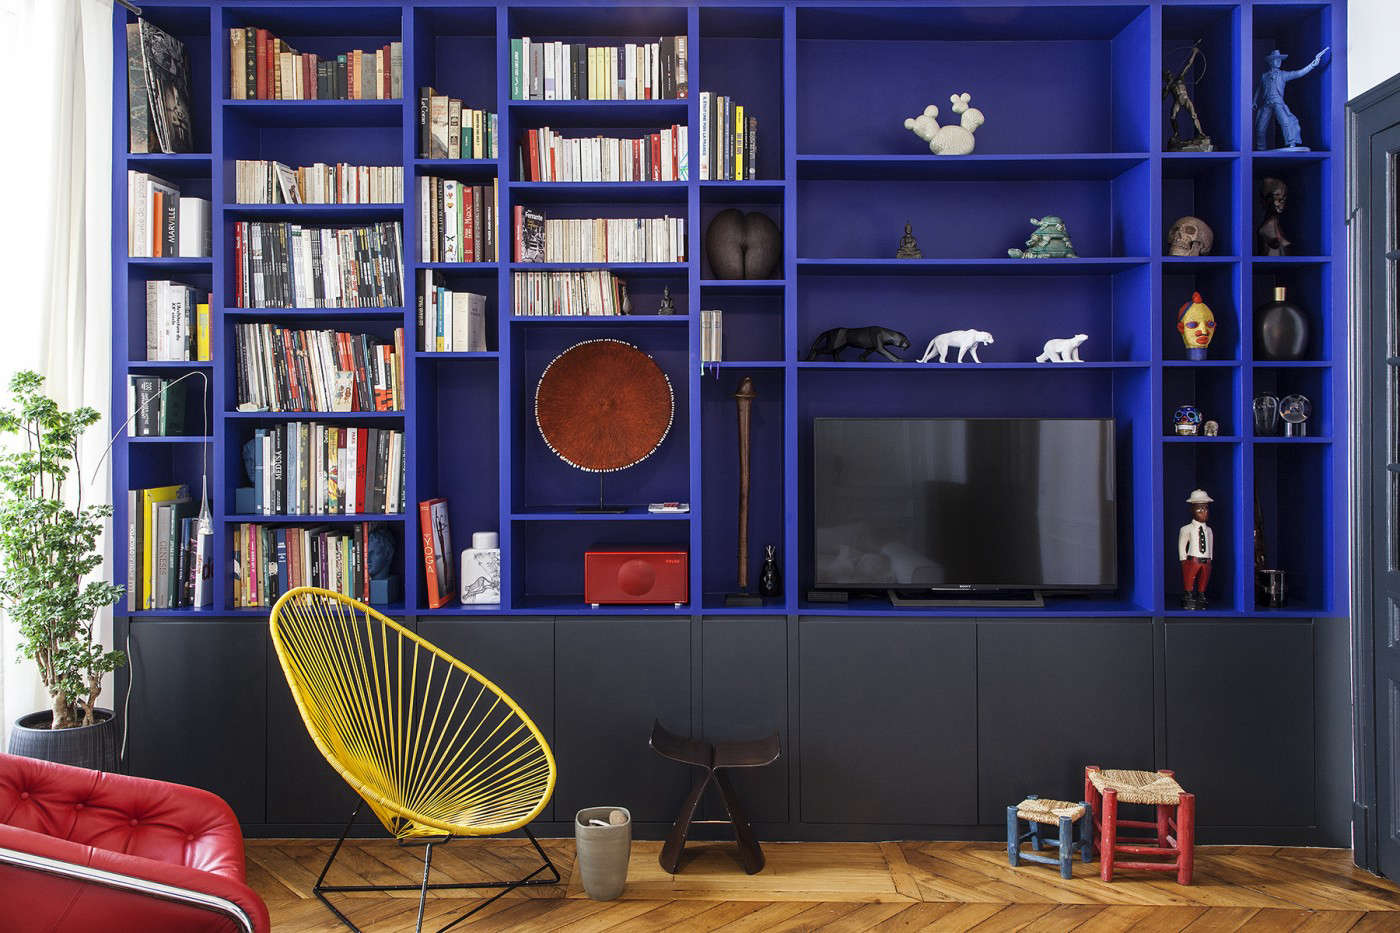 The bookshelf in question: striking built-ins painted in a bold Yves Klein lookalike in a Paris apartment by Batiik Studio.